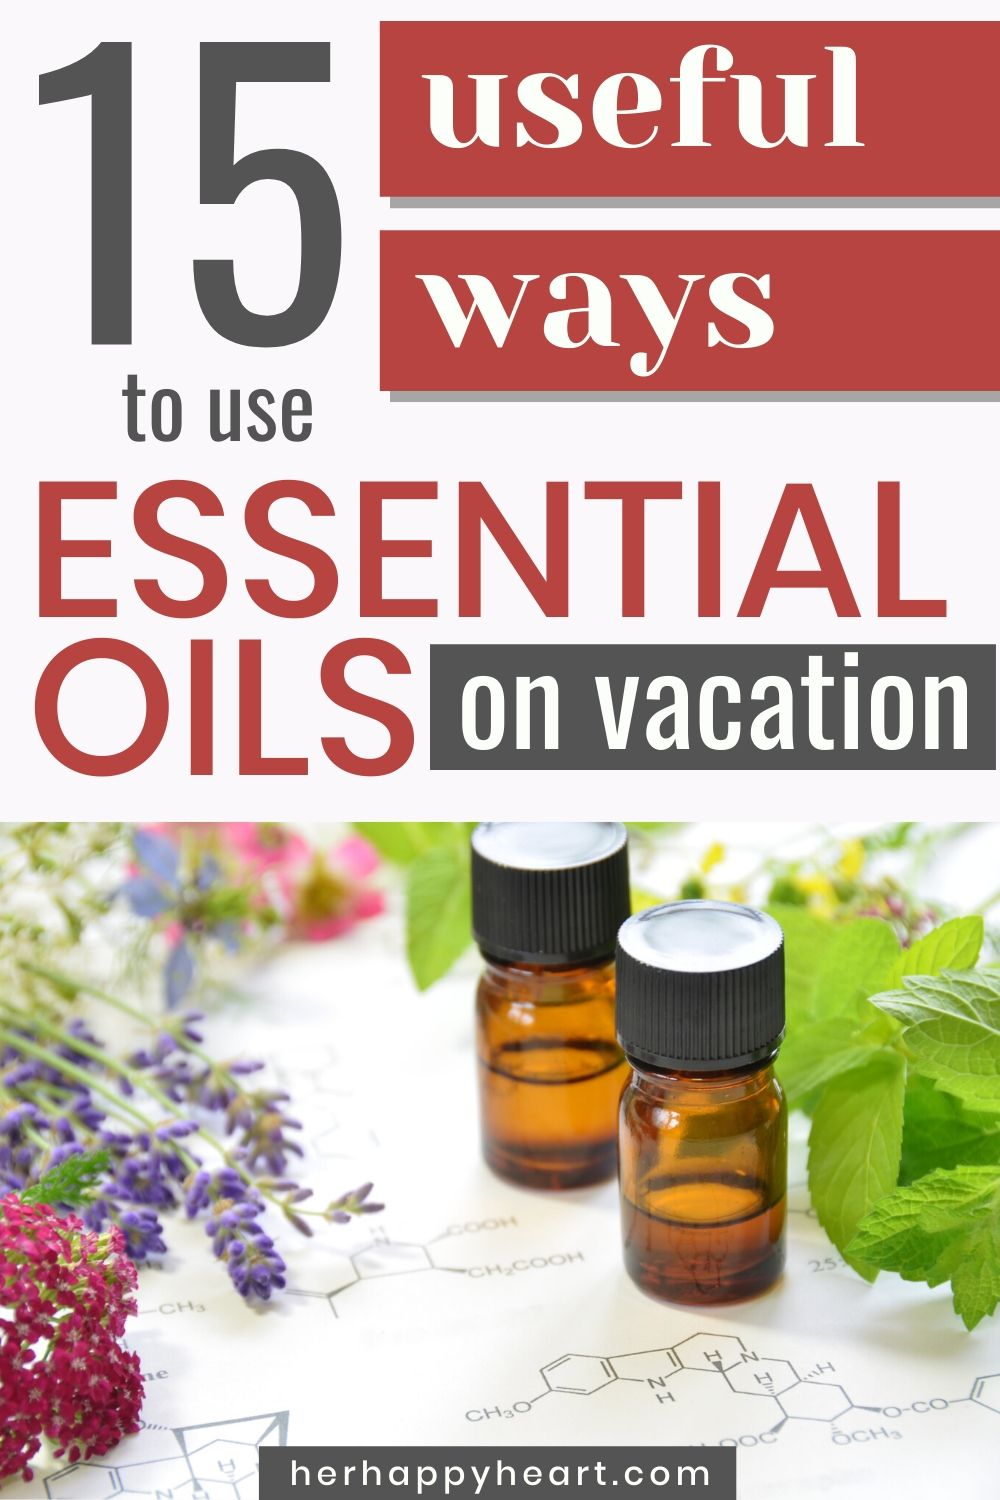 Essential oils travel tips   Taking packing essential oils on vacation   essential oil travel cases, storage and packing   vacation tips for health, immunity, sleep and skin care   traveling abroad with essential oils